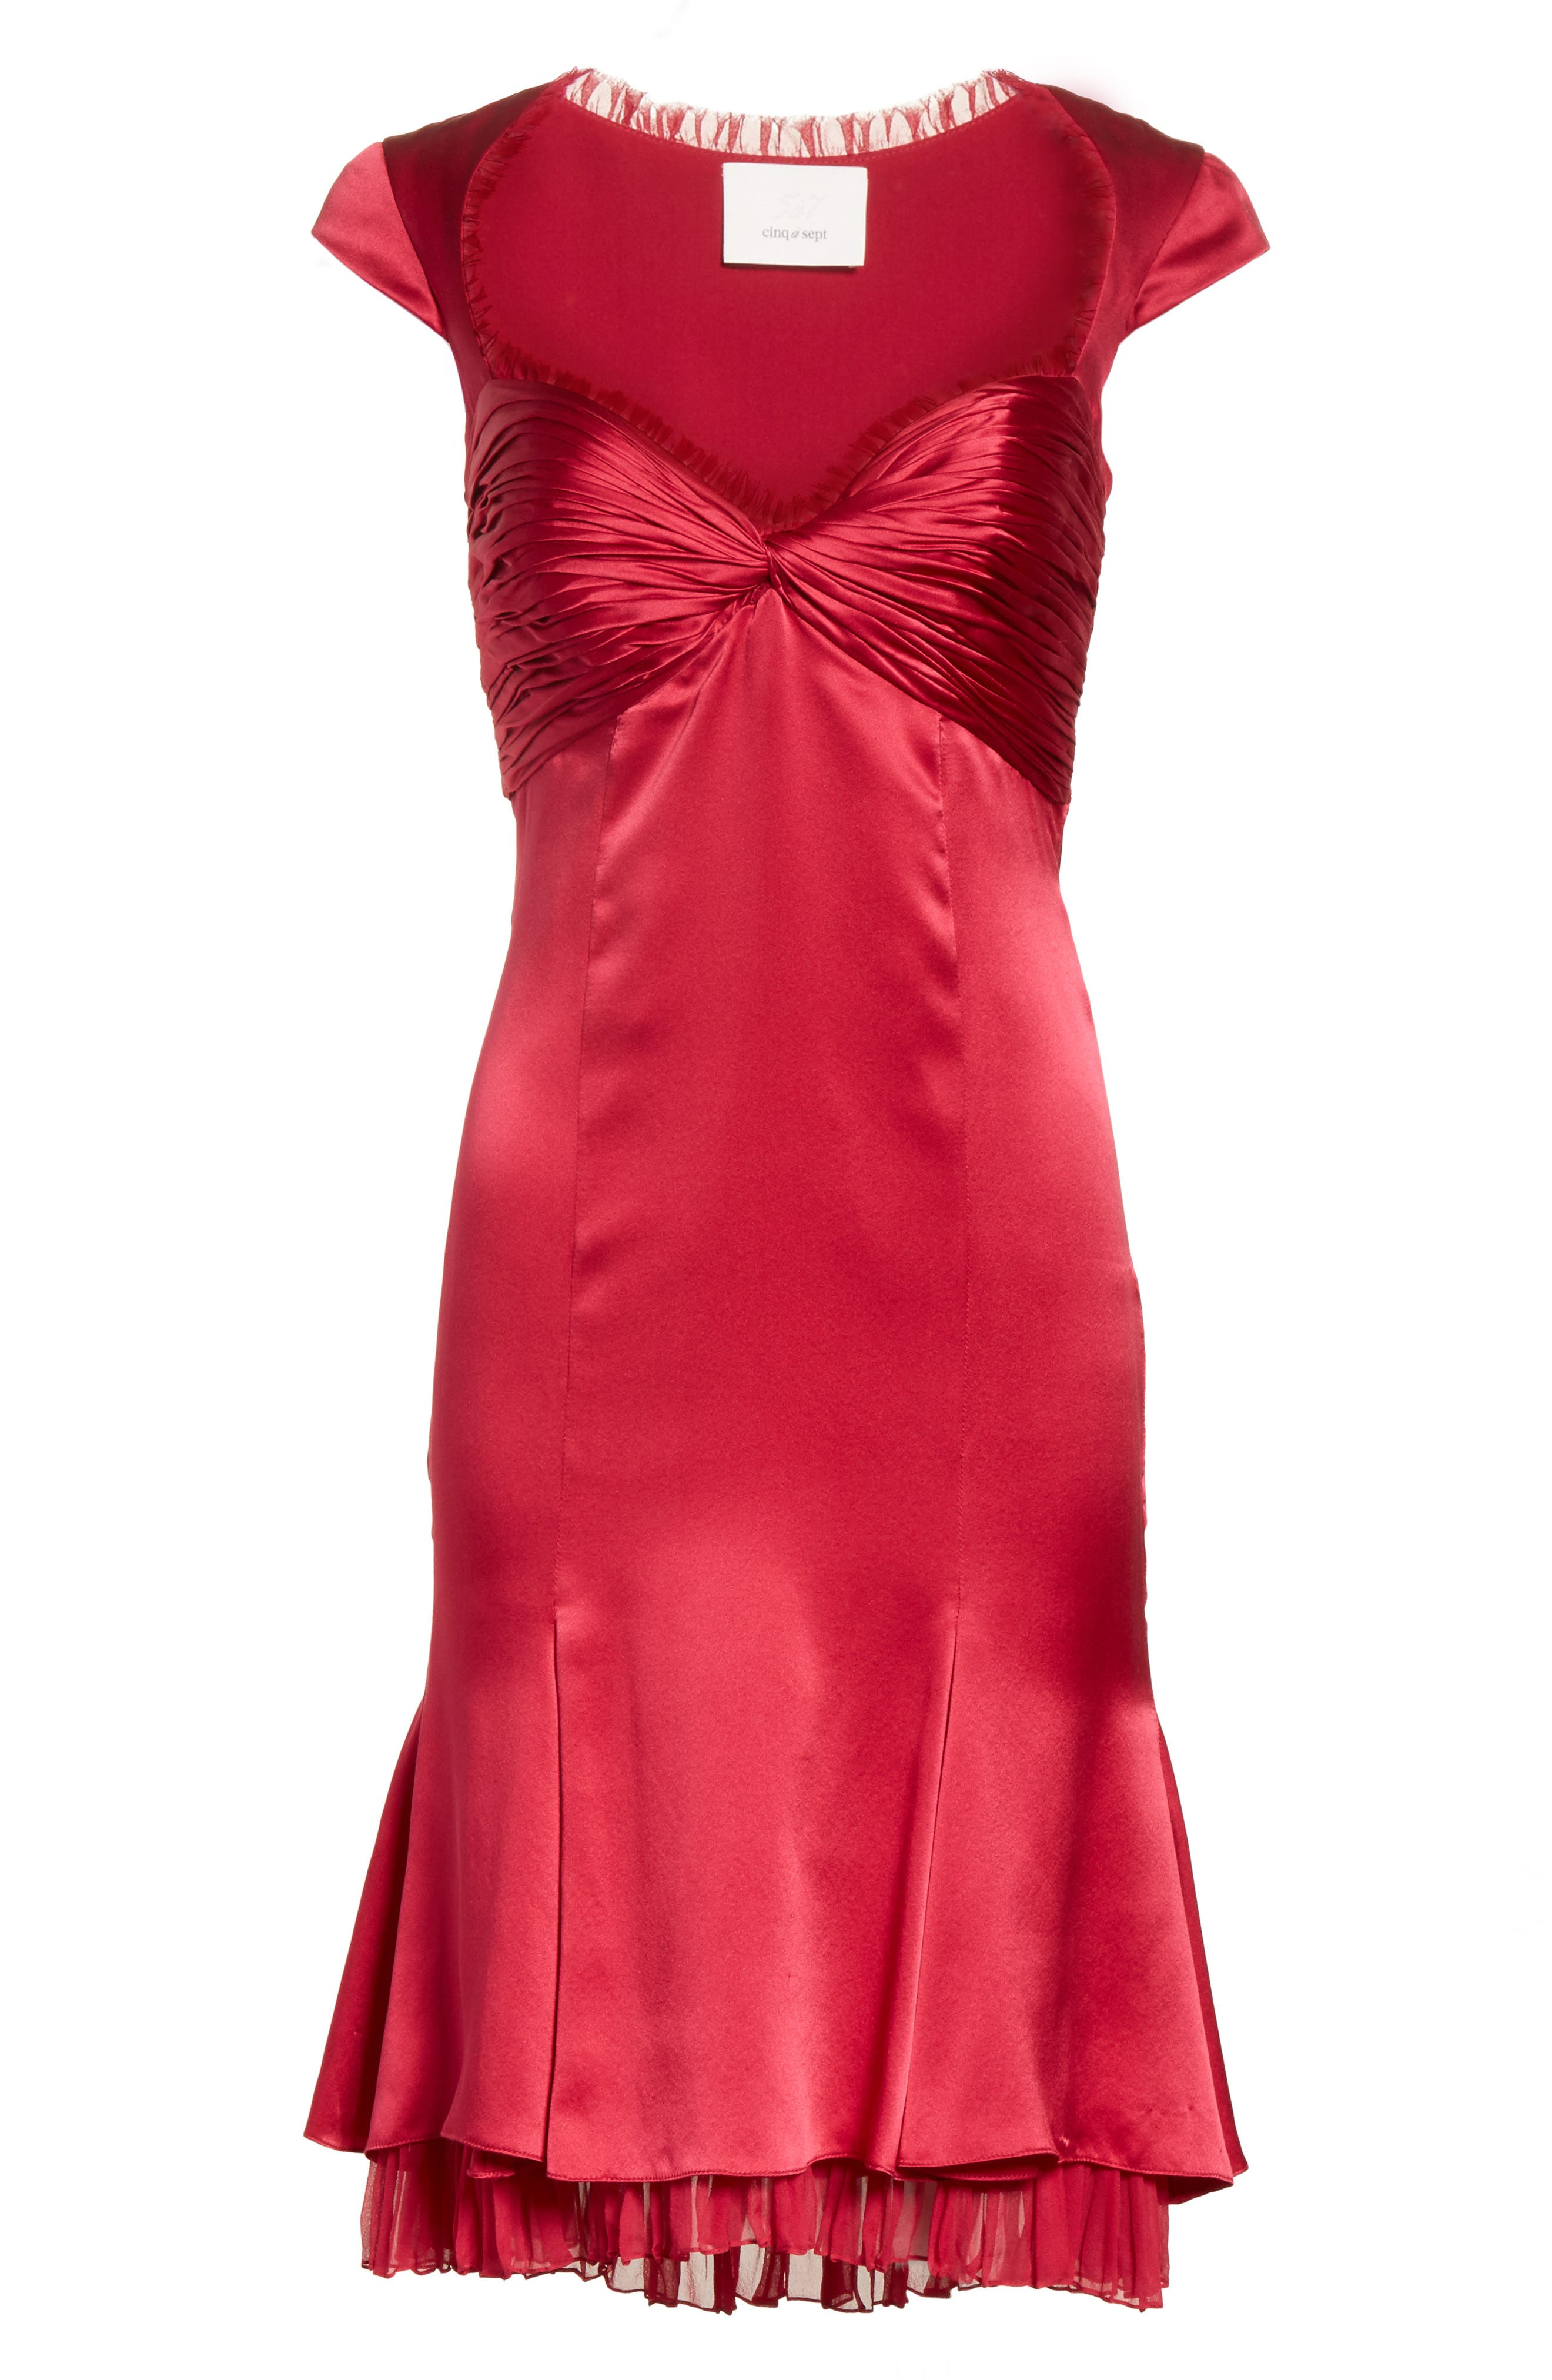 Marnie Satin Dress,                             Alternate thumbnail 6, color,                             Cerise